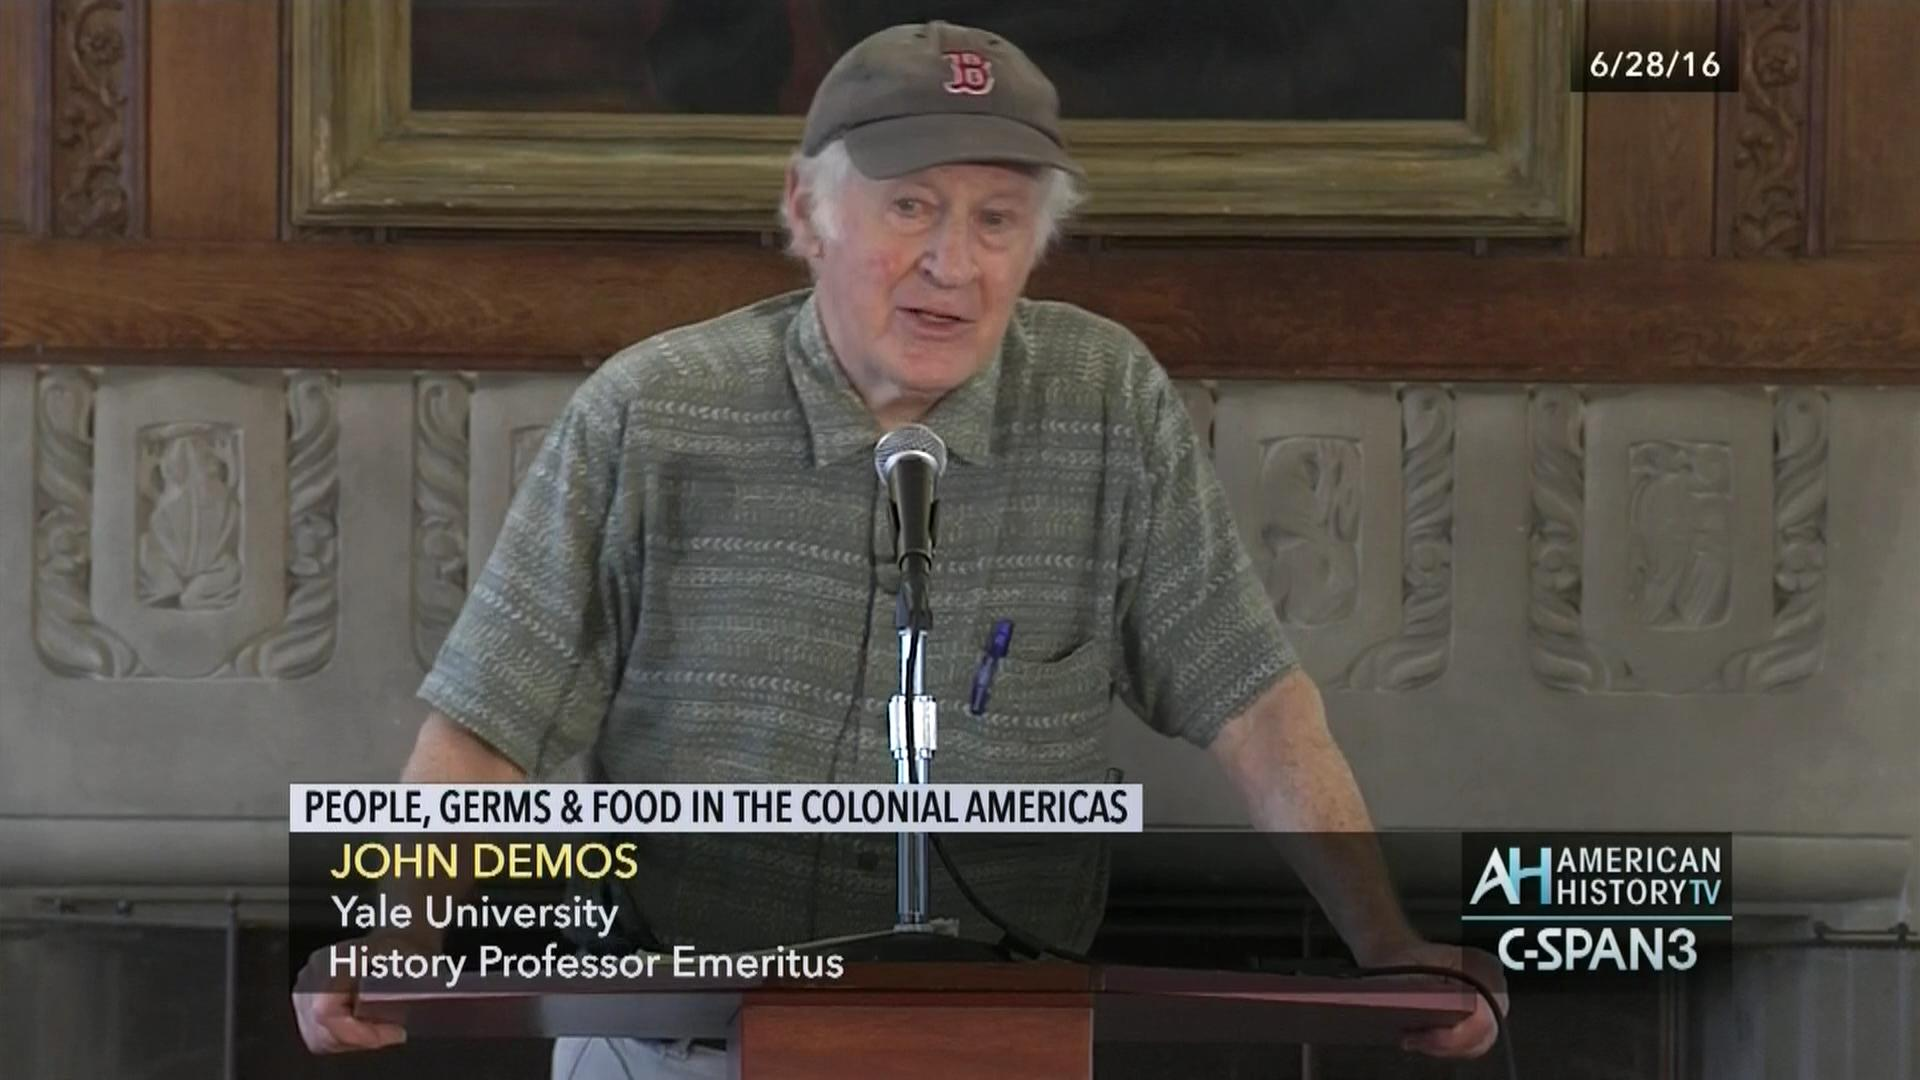 People, Germs, and Food in the Colonial Americas